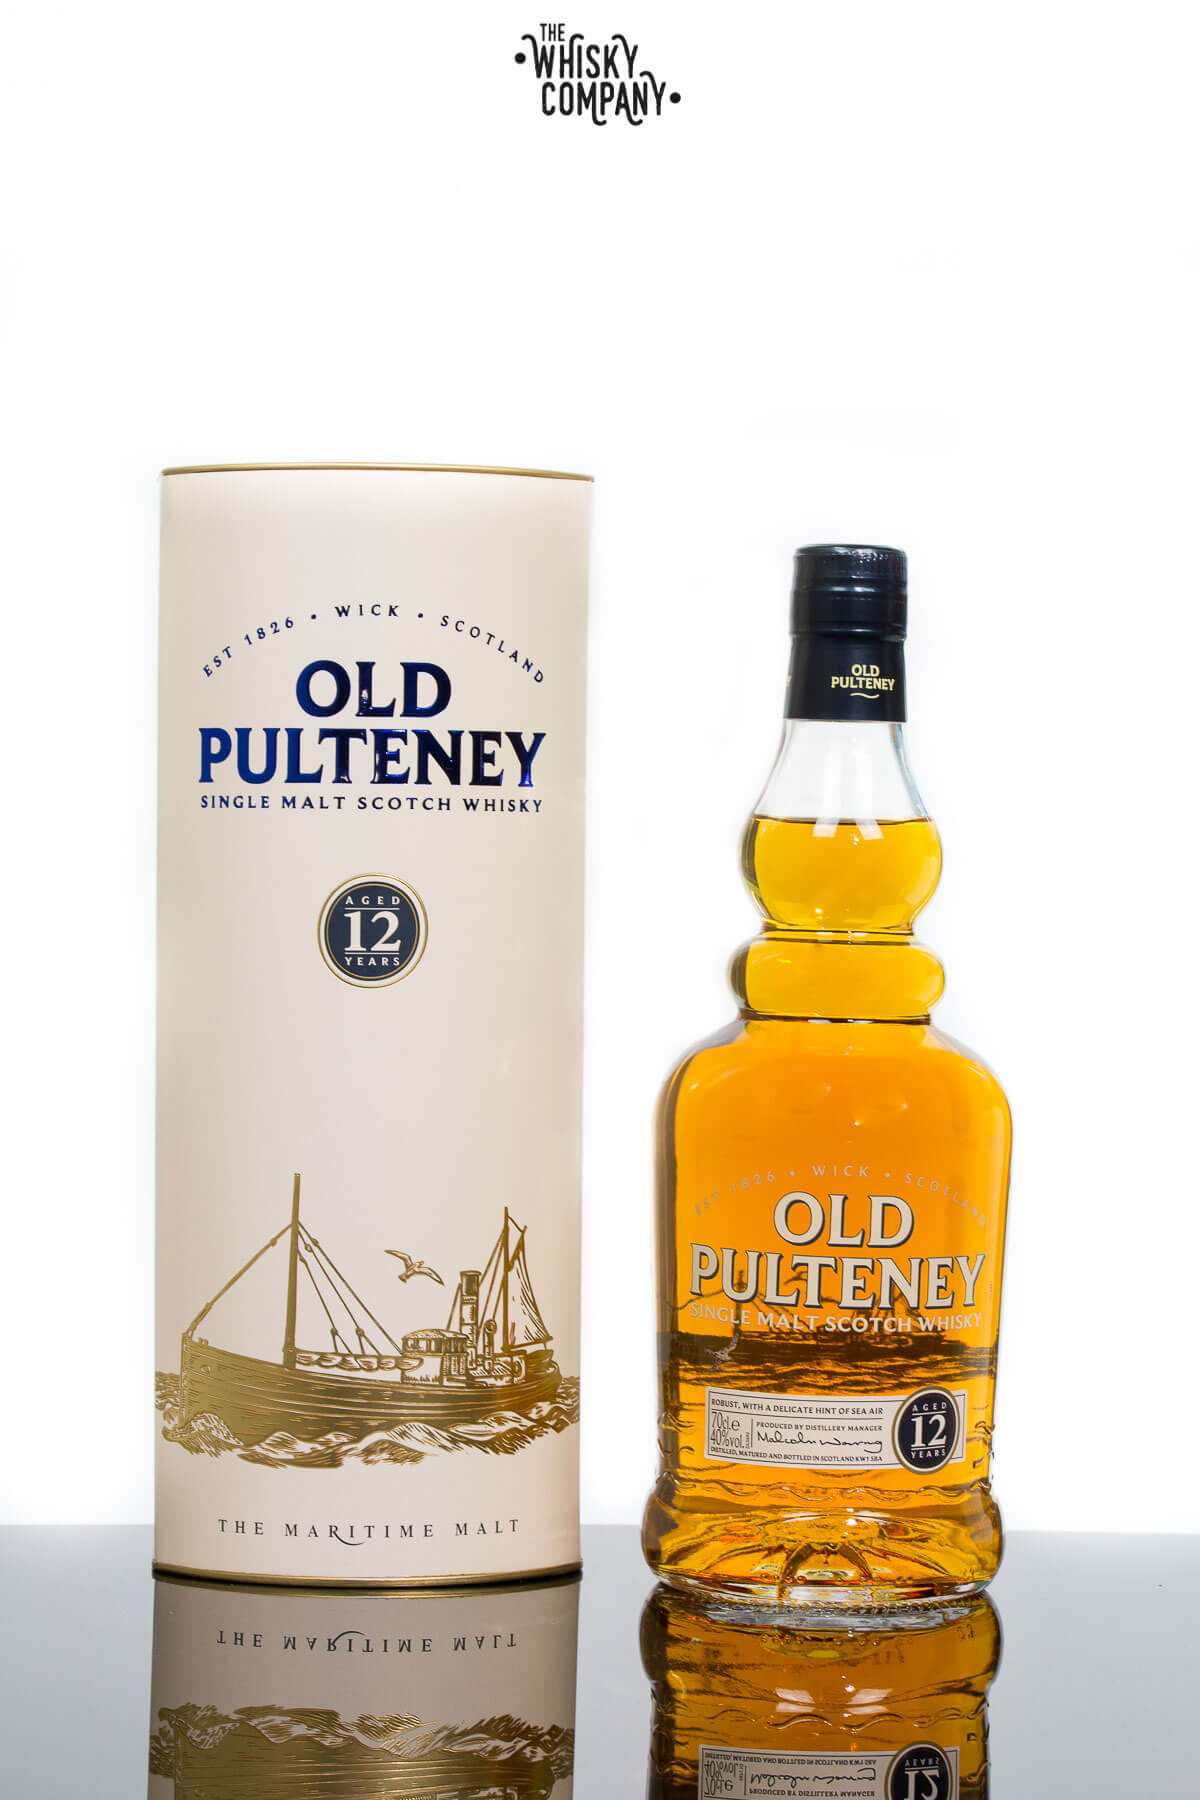 Old Pulteney Aged 12 Years Highland Single Malt Scotch Whisky